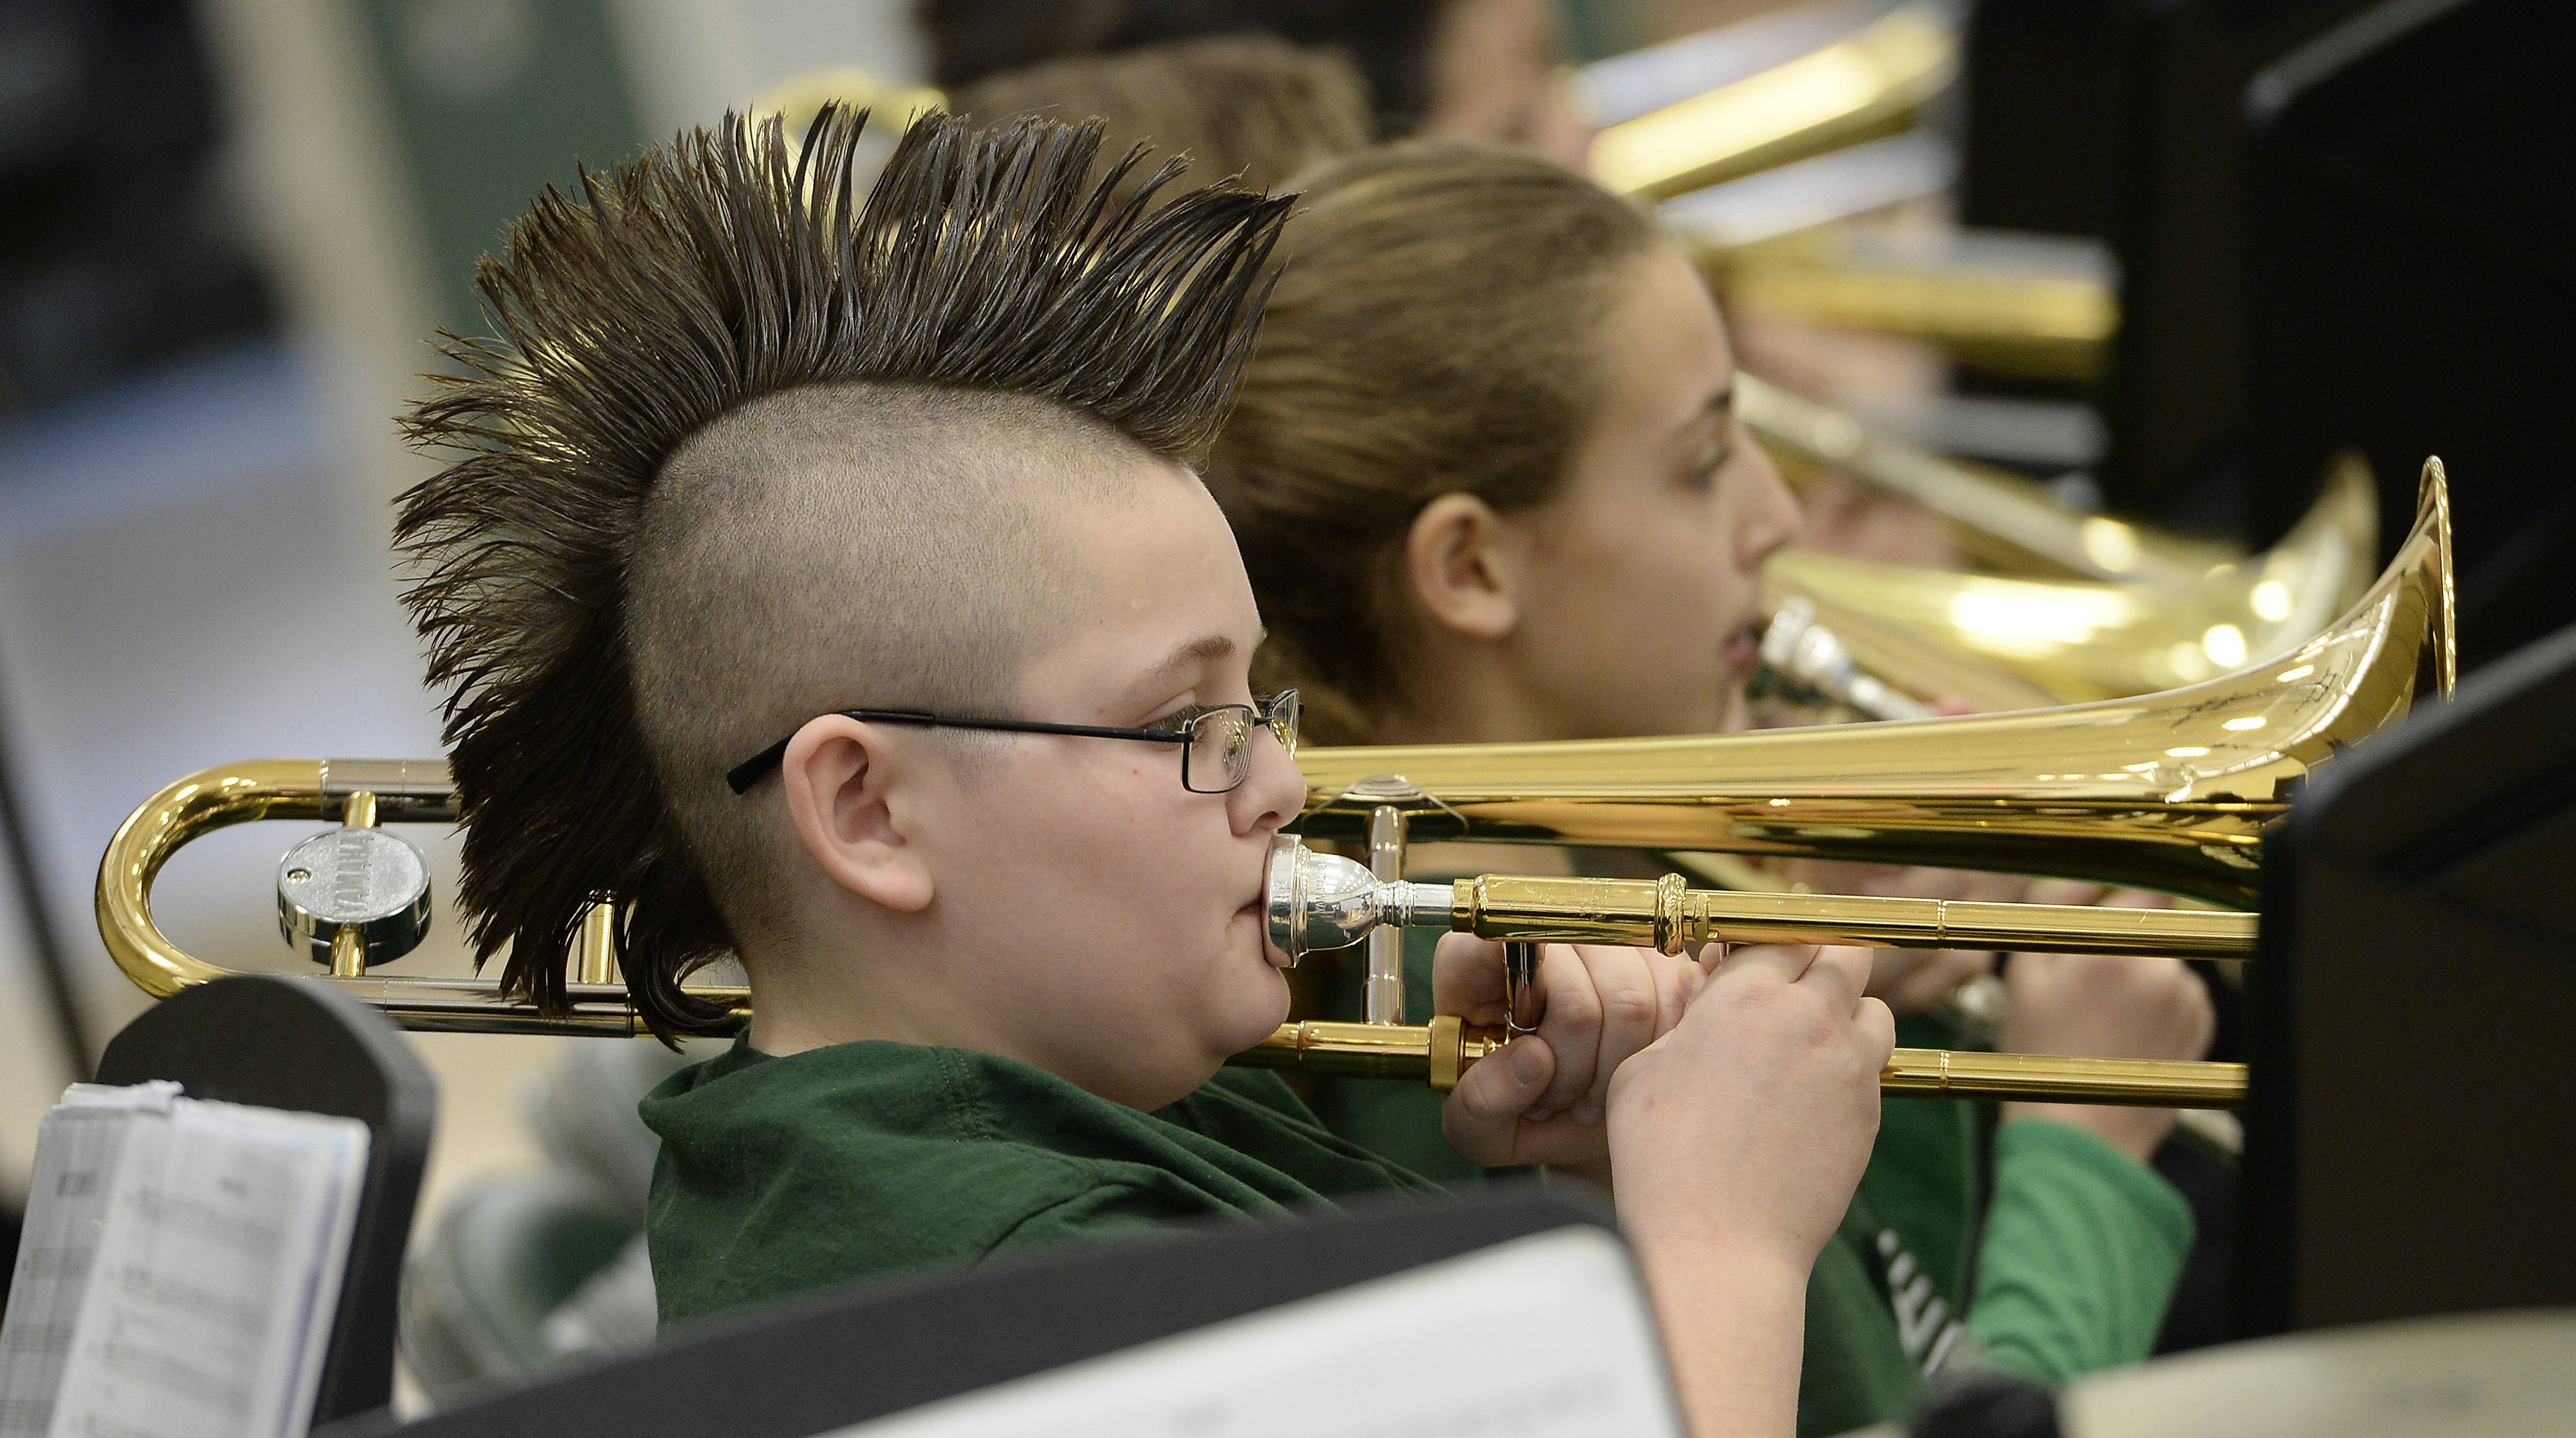 Vito Romanos, 11, of Round Lake belts out the notes with the rest of his trombone playing band members of Fremont school in Mundelein at the 21st annual Jazz Jamboree at Thomas Middle School in Arlington Heights on Saturday.